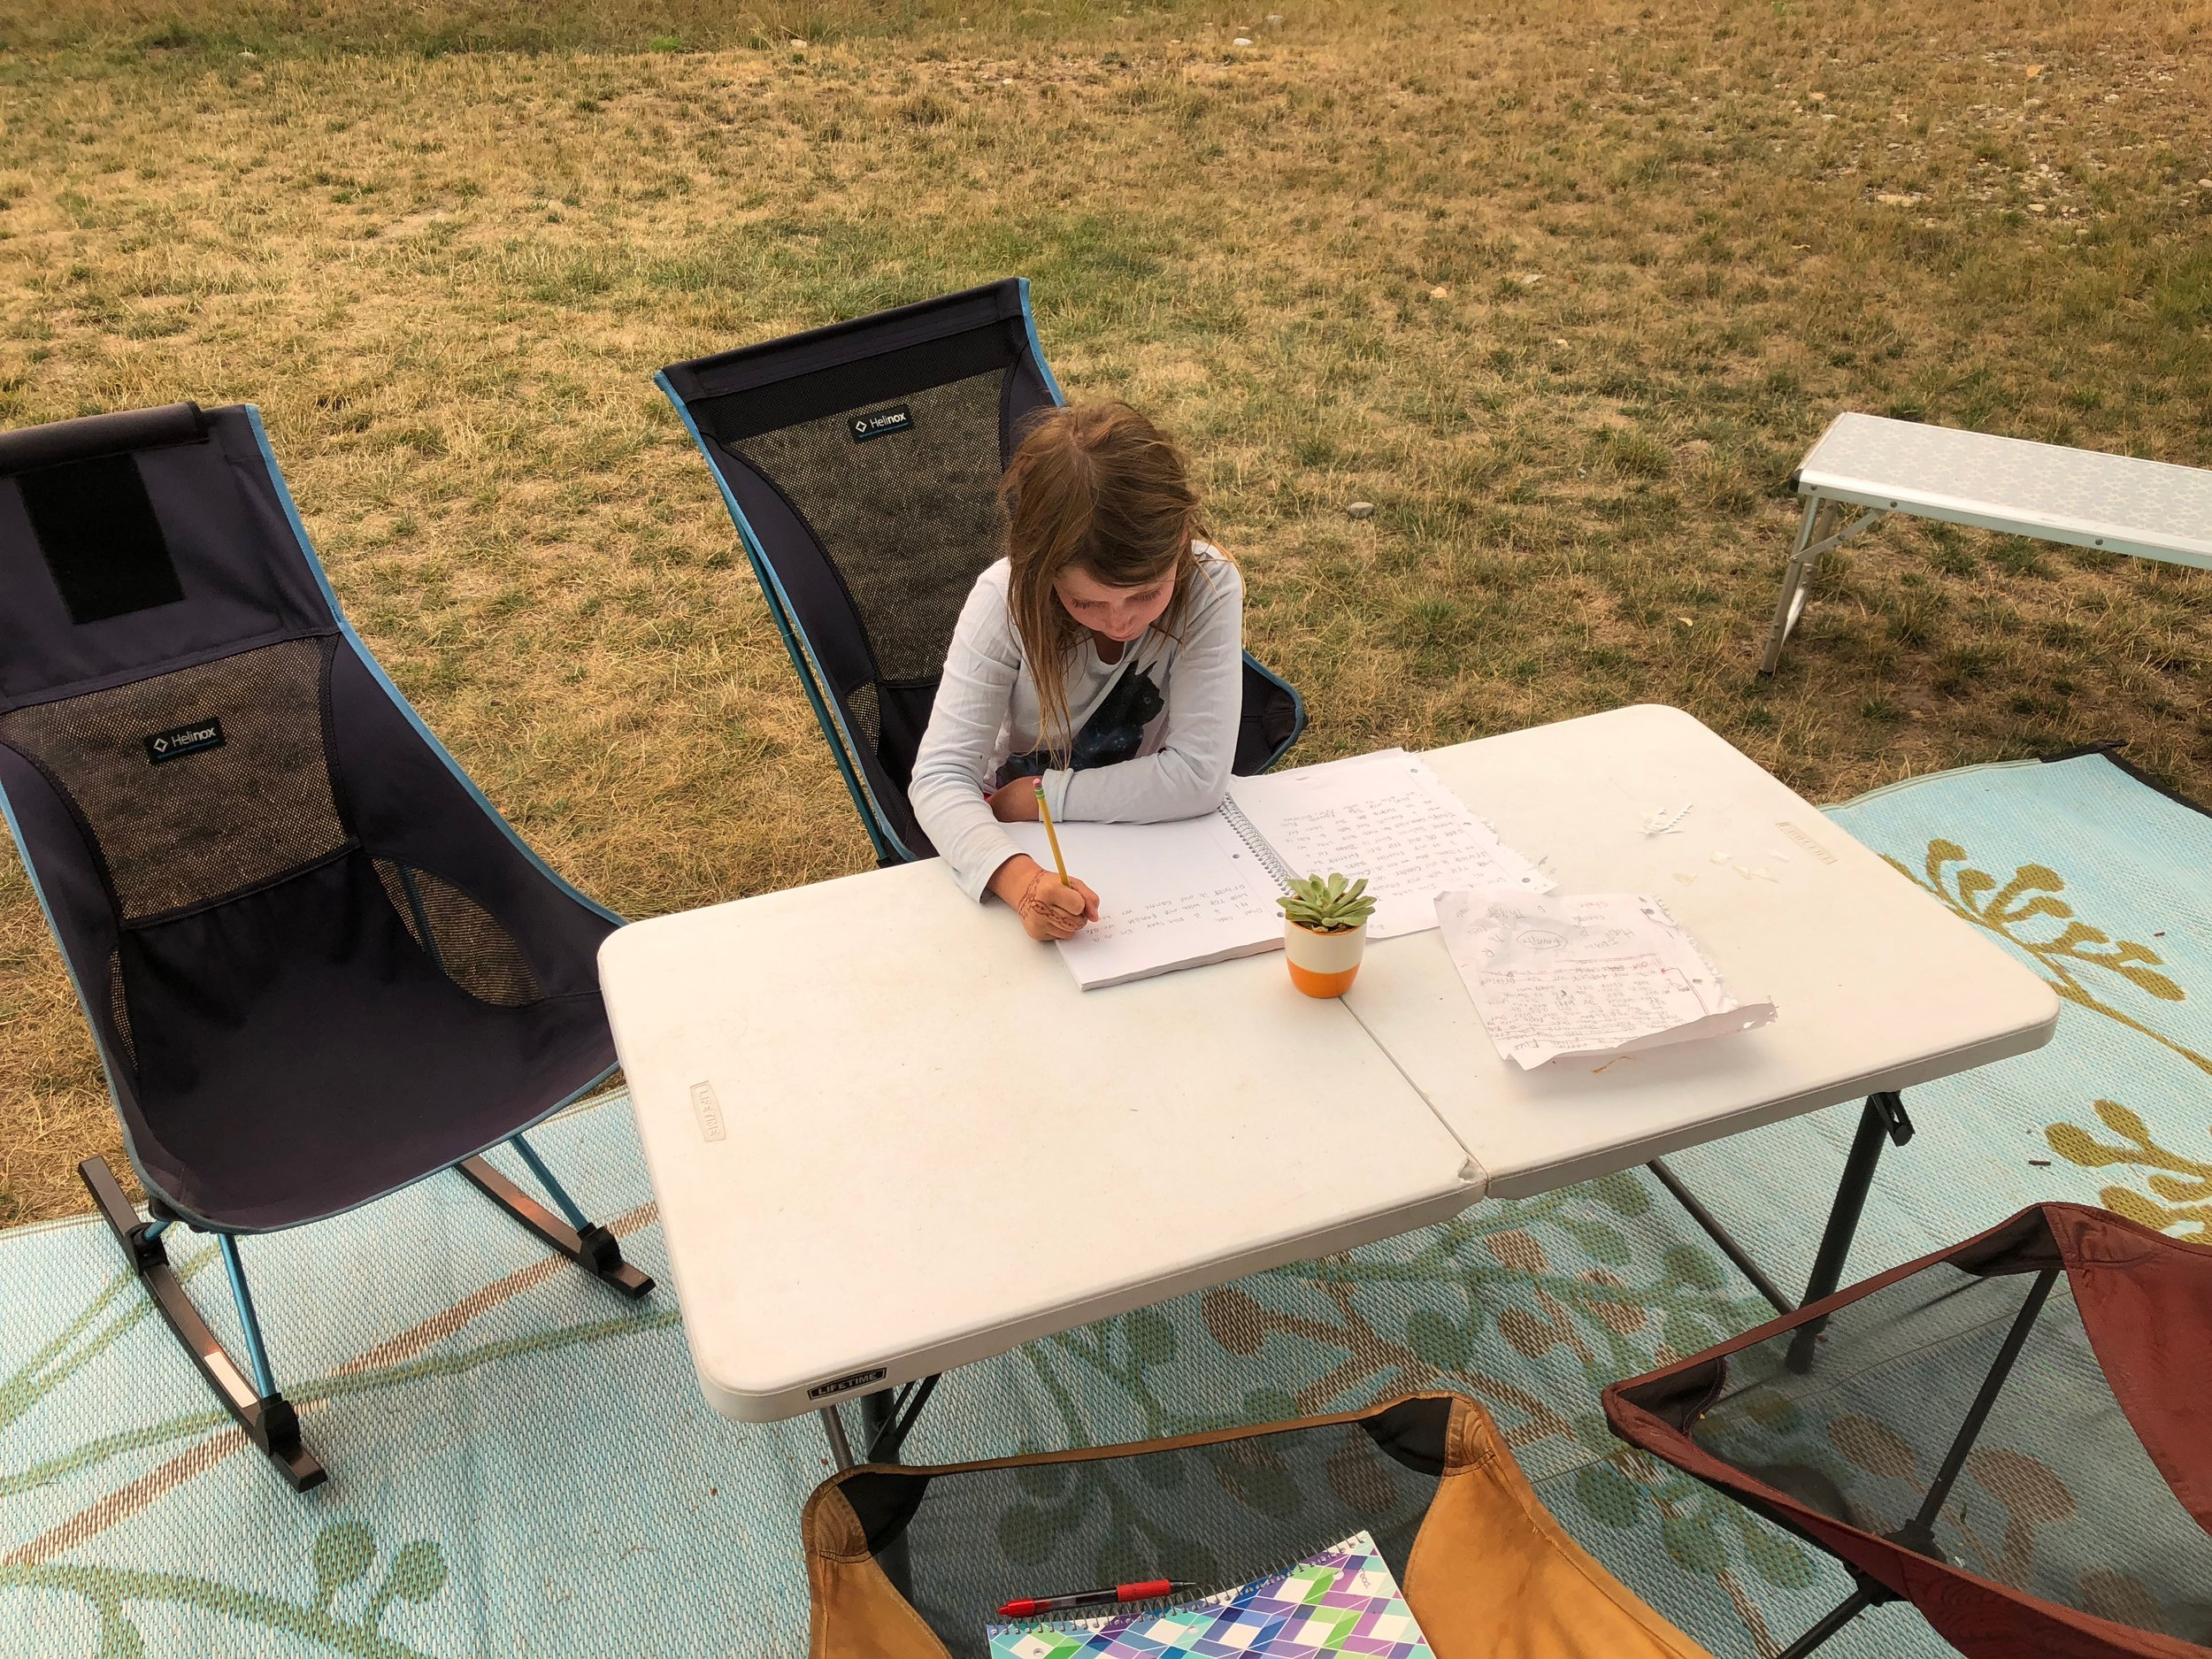 Isla at camp doing schoolwork